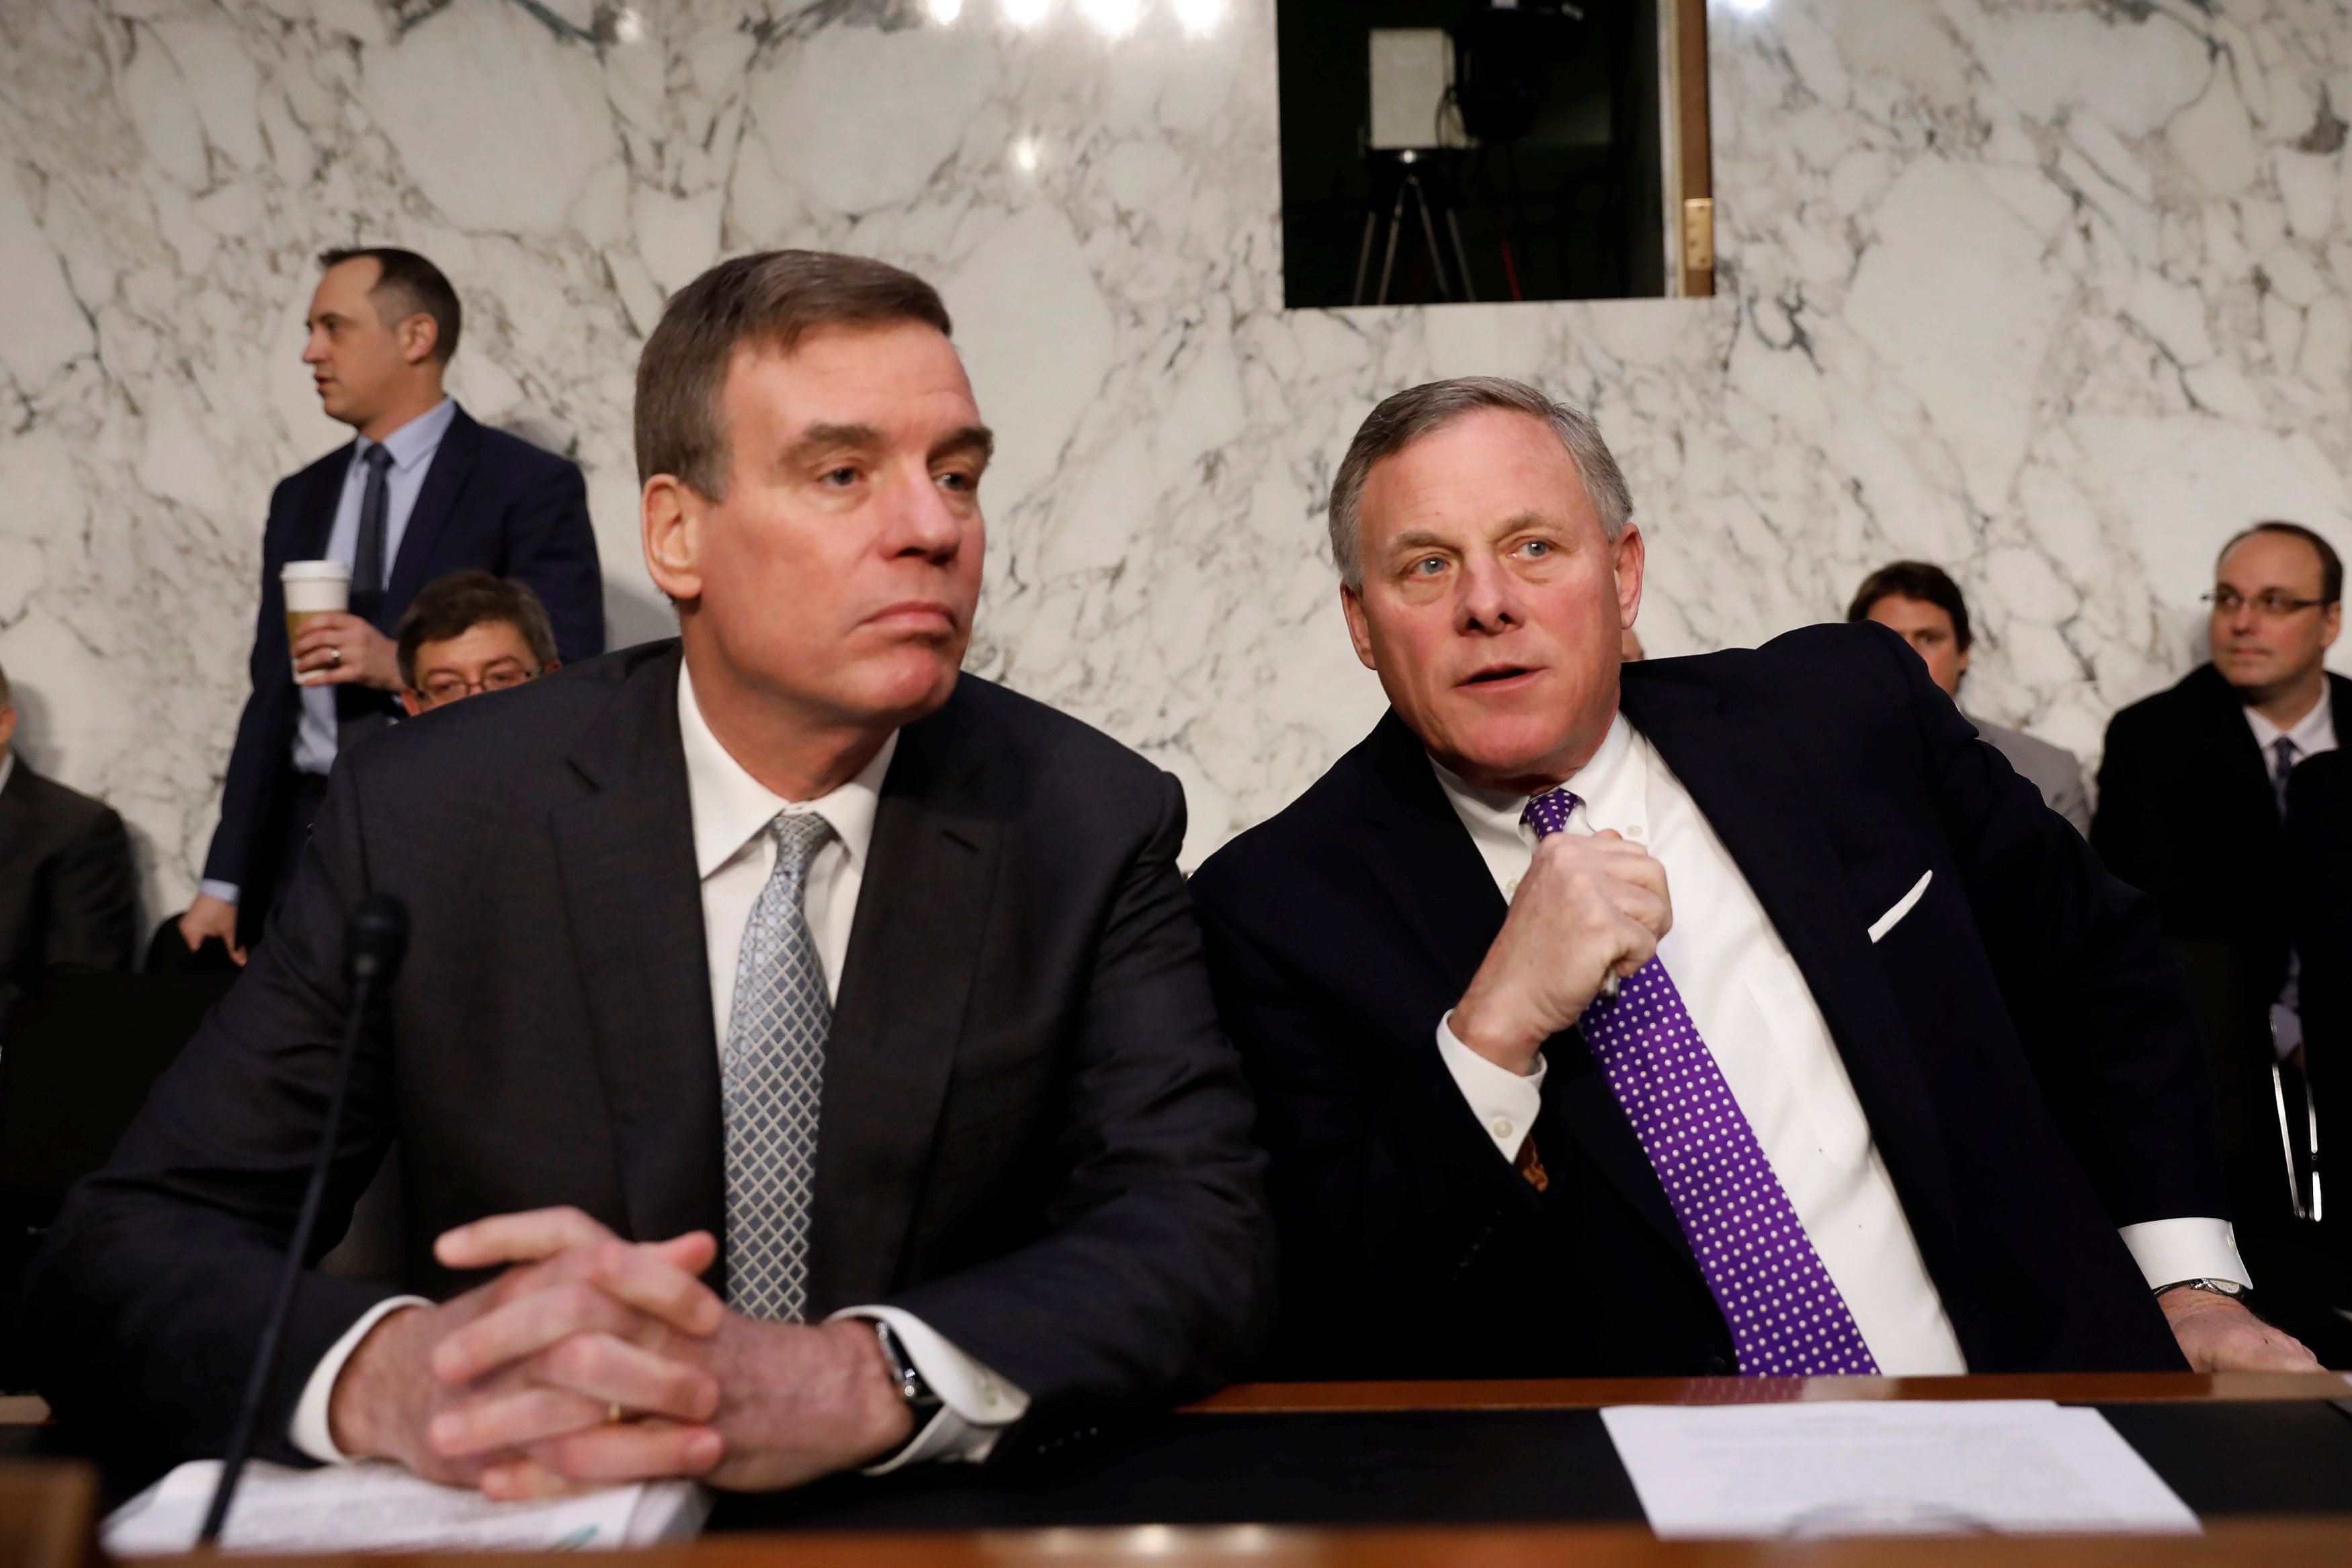 Senate Intelligence leaders suspect Republicans leaked Virginia Sen. Warner's text messages